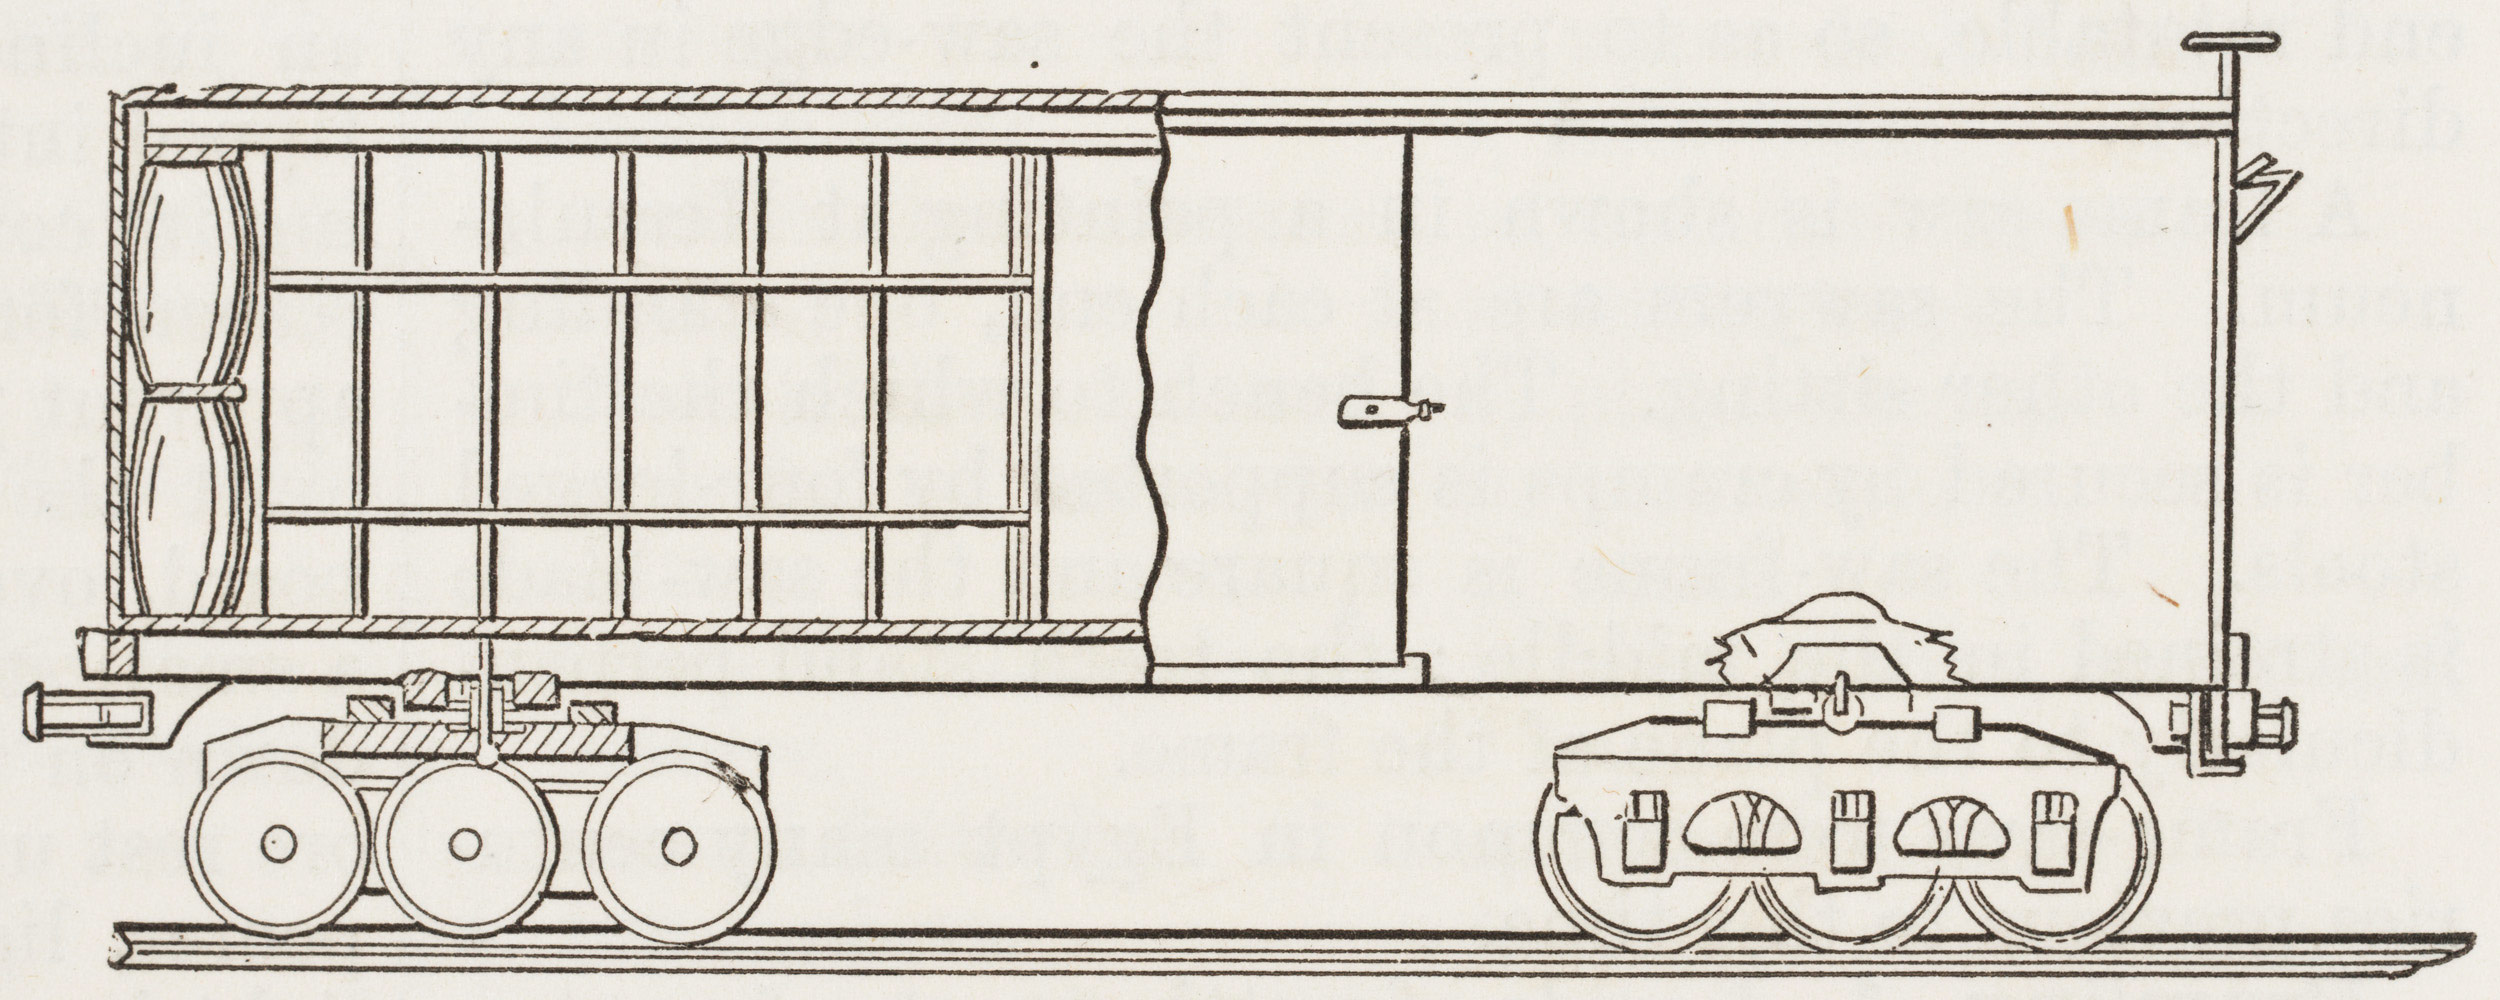 Drawn railroad train car Of carriage used Transcontinental merchandise